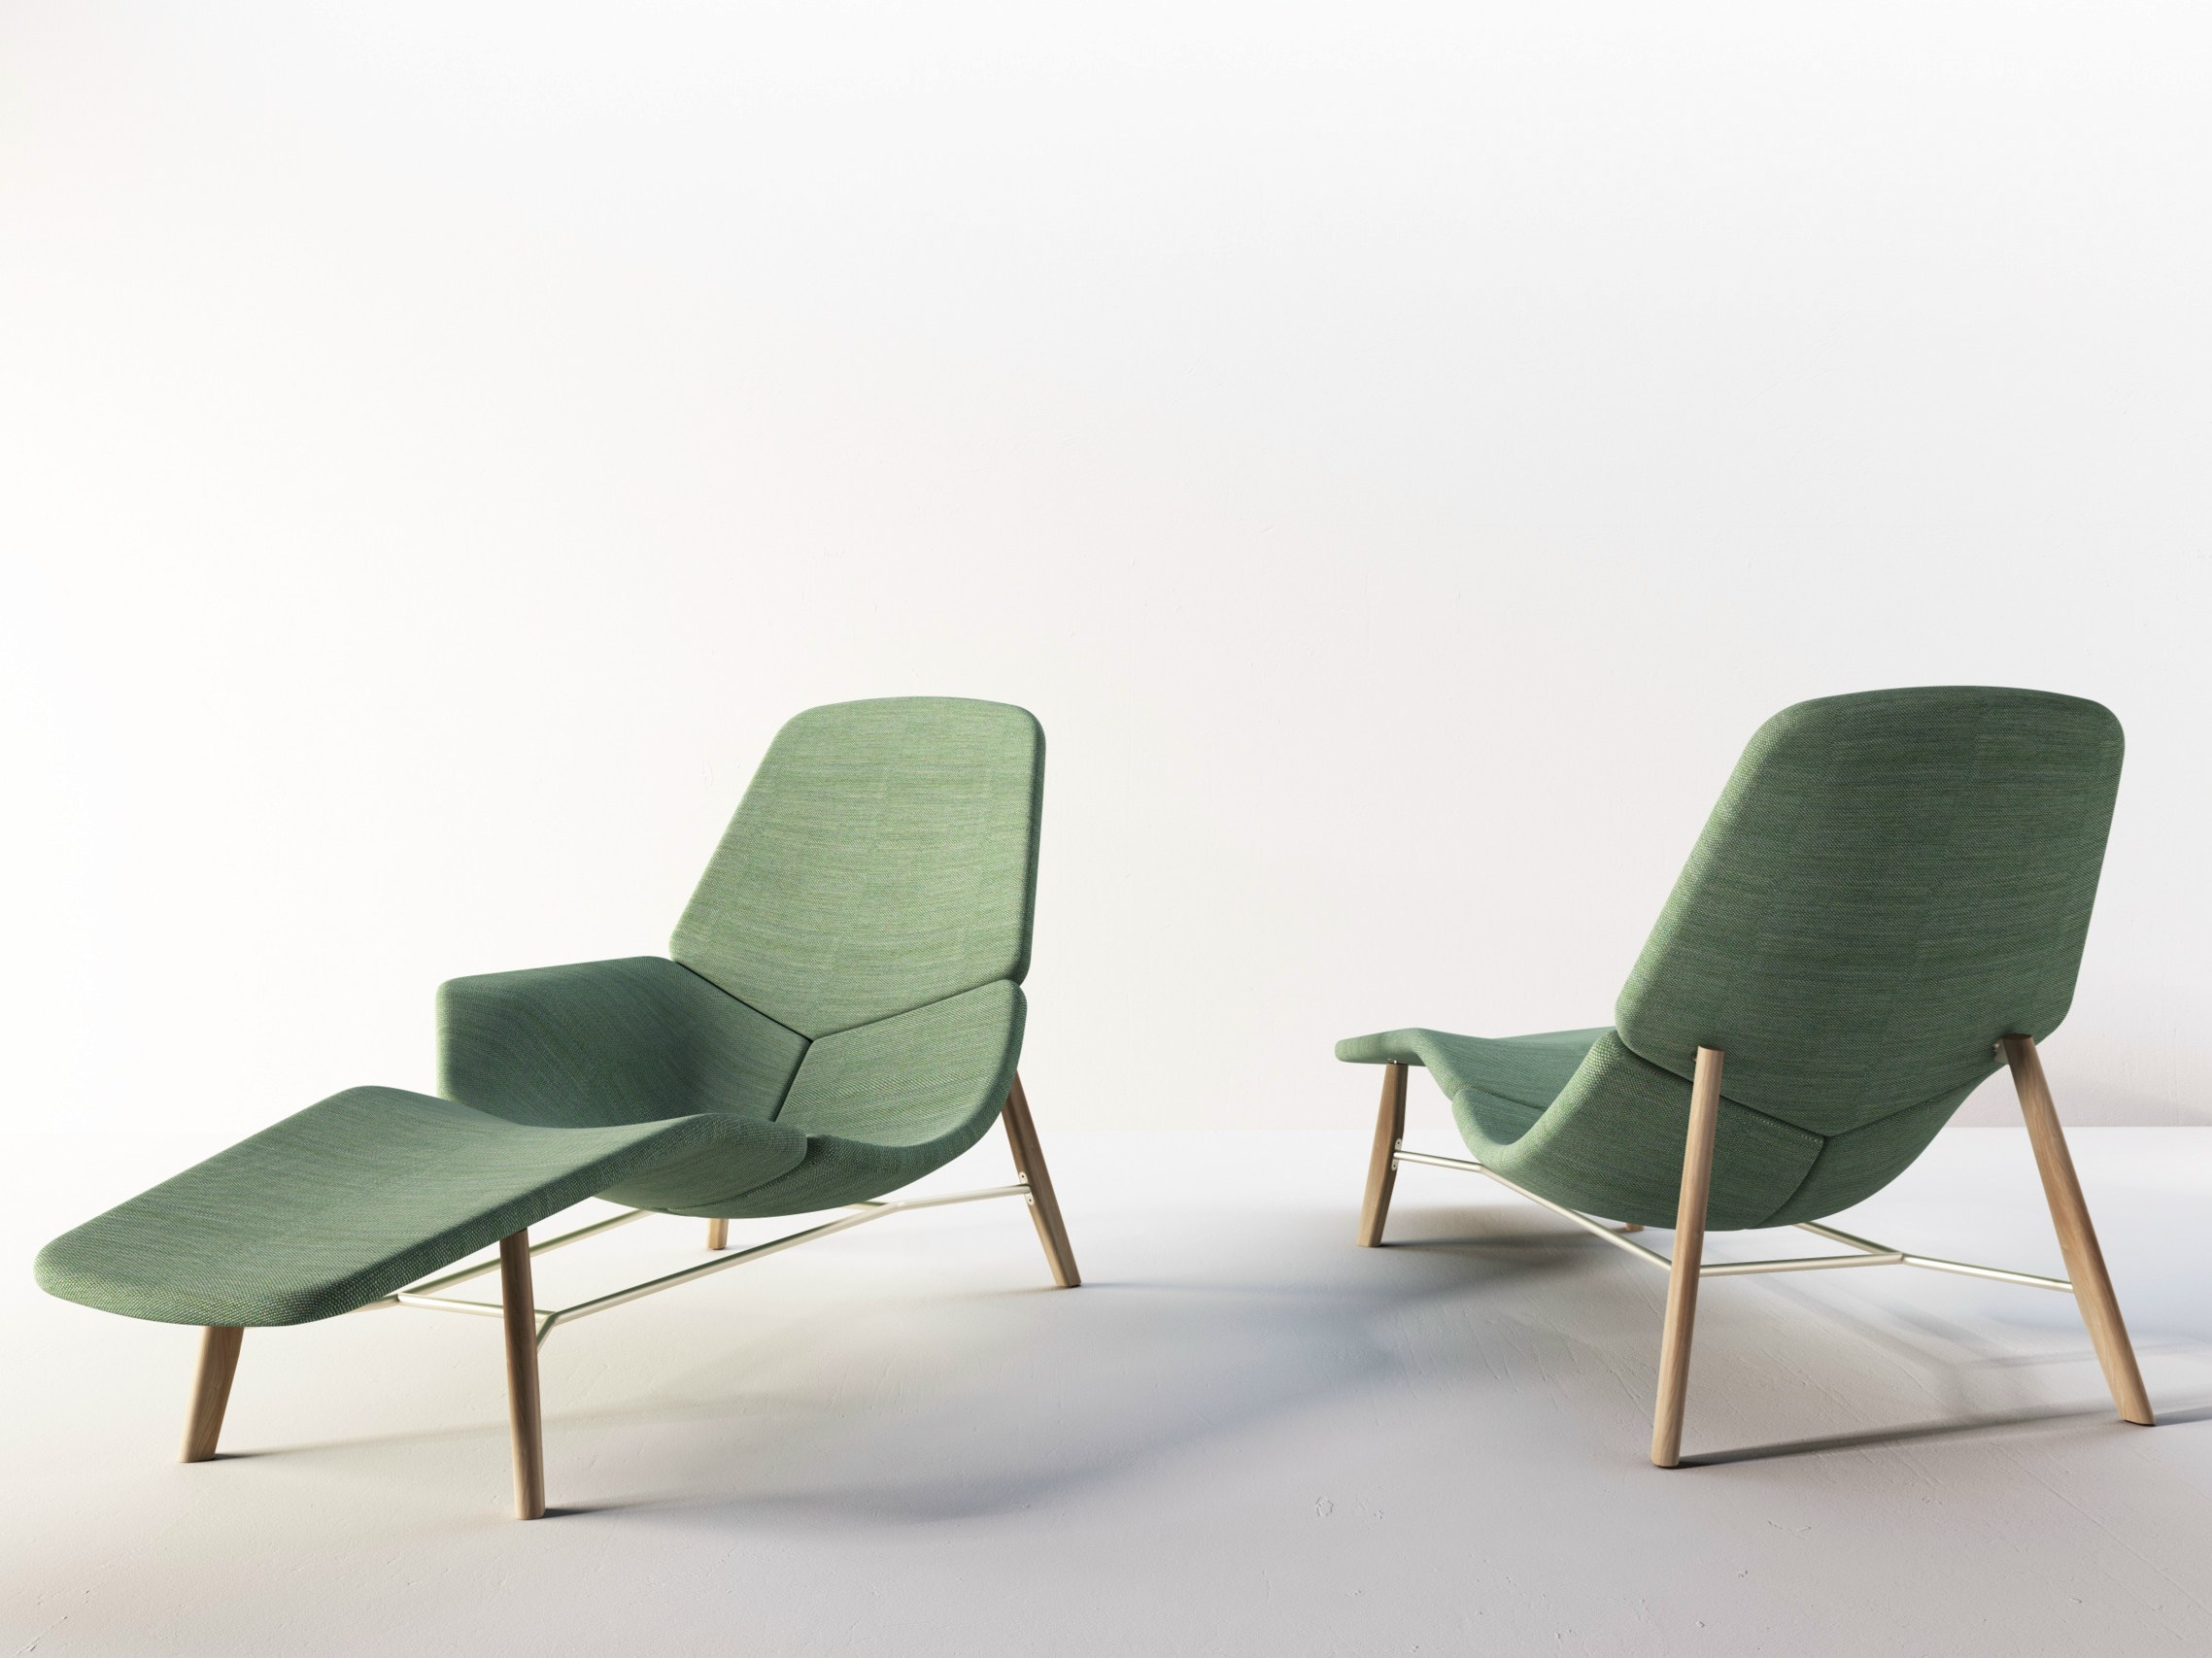 Fabric lounge chair ATOLL By Tacchini design Patrick Norguet